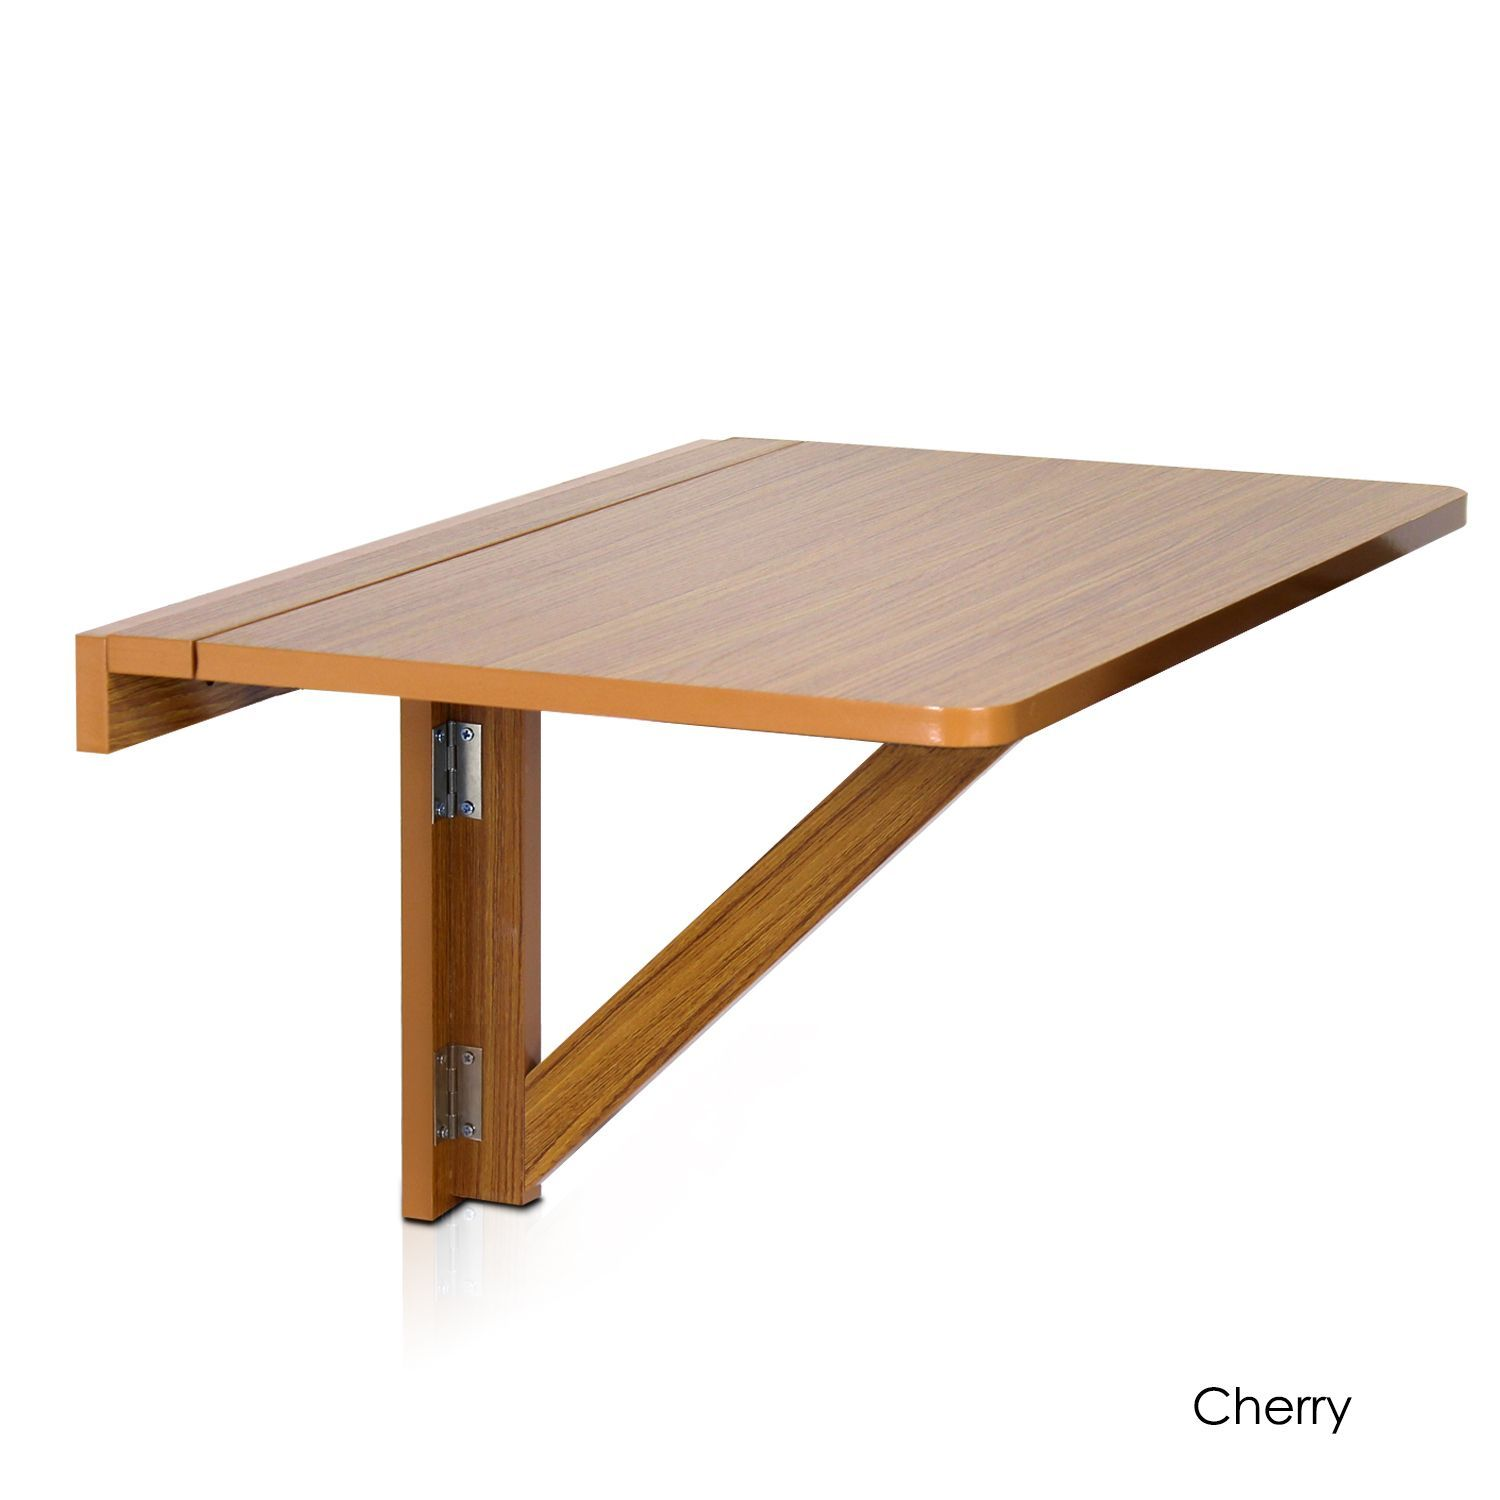 Save Space In Your Home With This Accommodating Wall Mounted Folding Table,  Available In A Cherry Or Espresso Finish. When Necessary, This Handy Folding  ...